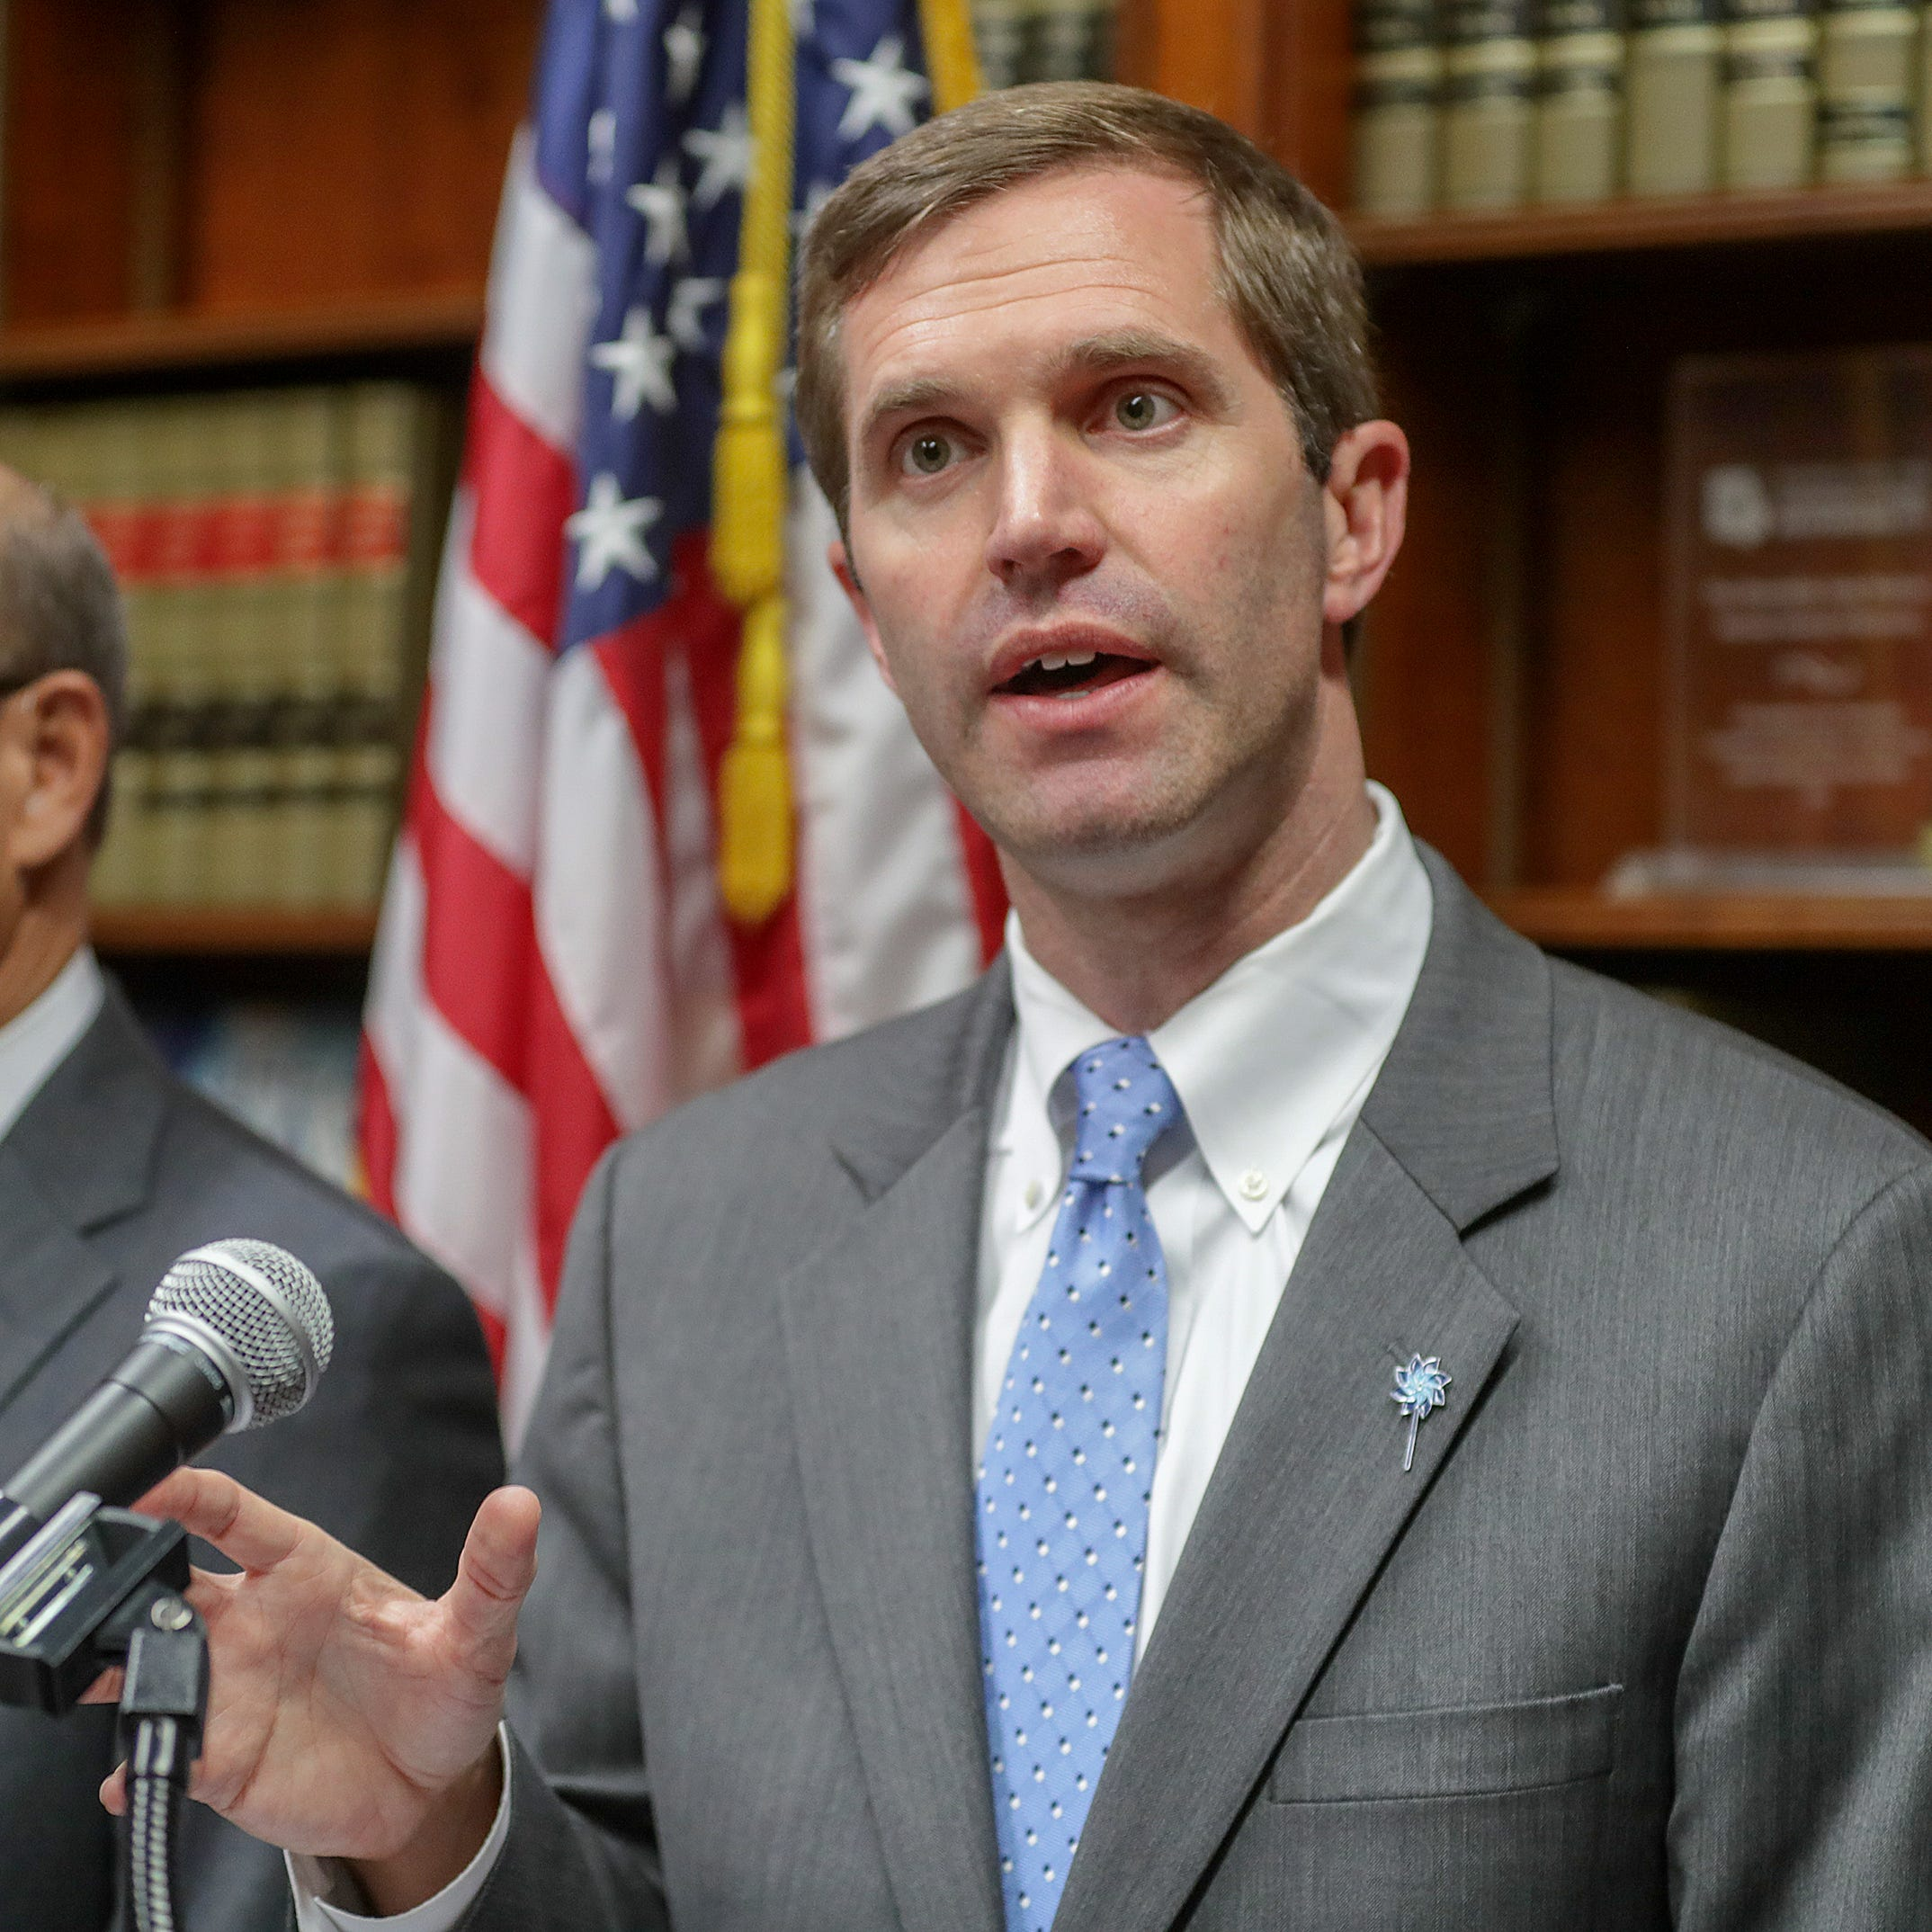 'It is a matter of life and death': Andy Beshear to fight ACA ruling